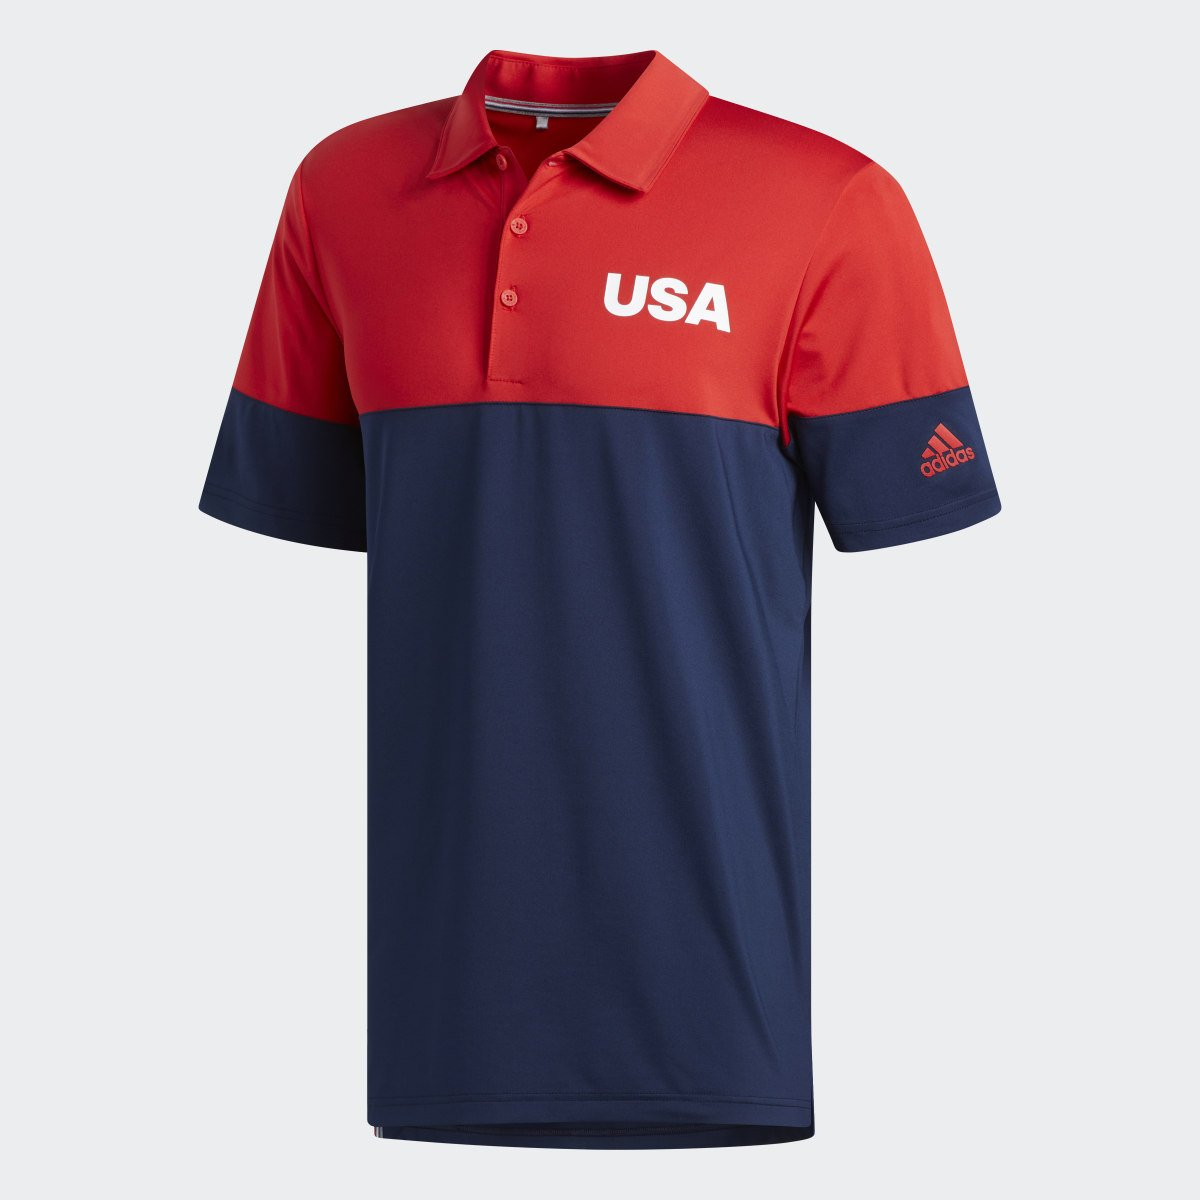 Adidas Men's USA Ultimate 2.0 All Day Polo